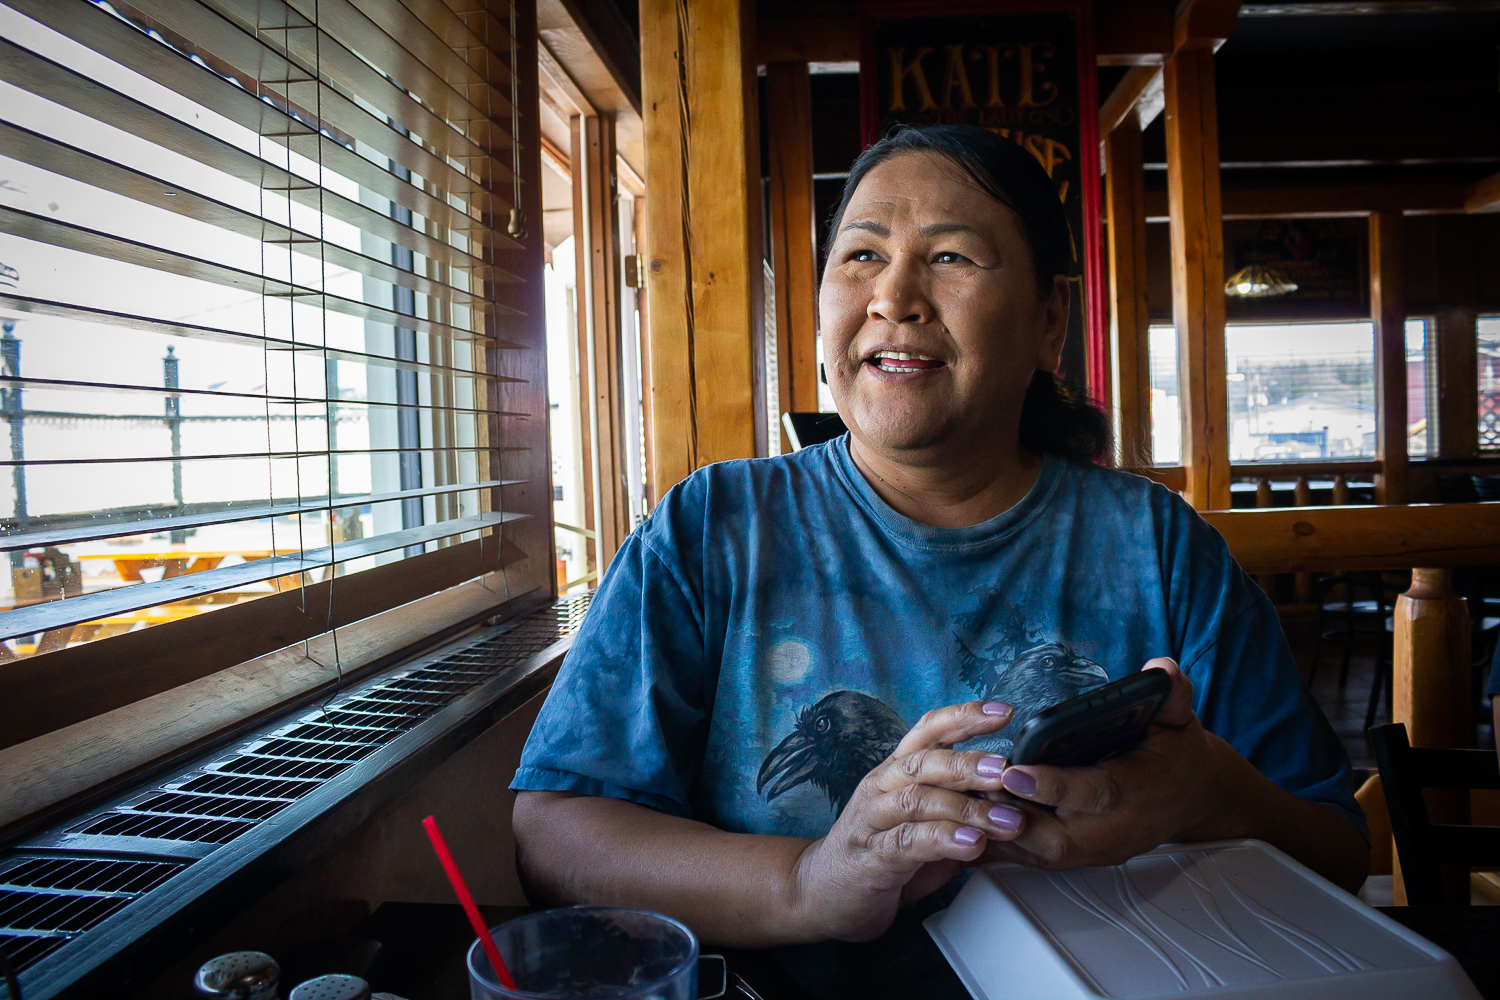 "Ronnie Young sits in the Legends Smokehouse and Grill restaurant in Whitehorse. ""I go here all the time,"" she says happily. The servers greet her with a warm, familiar smile, and soon enough, Ronnie tucks in to a large plate of pancakes, sausages and hashbrowns. Photo by Adam van der Zwan."